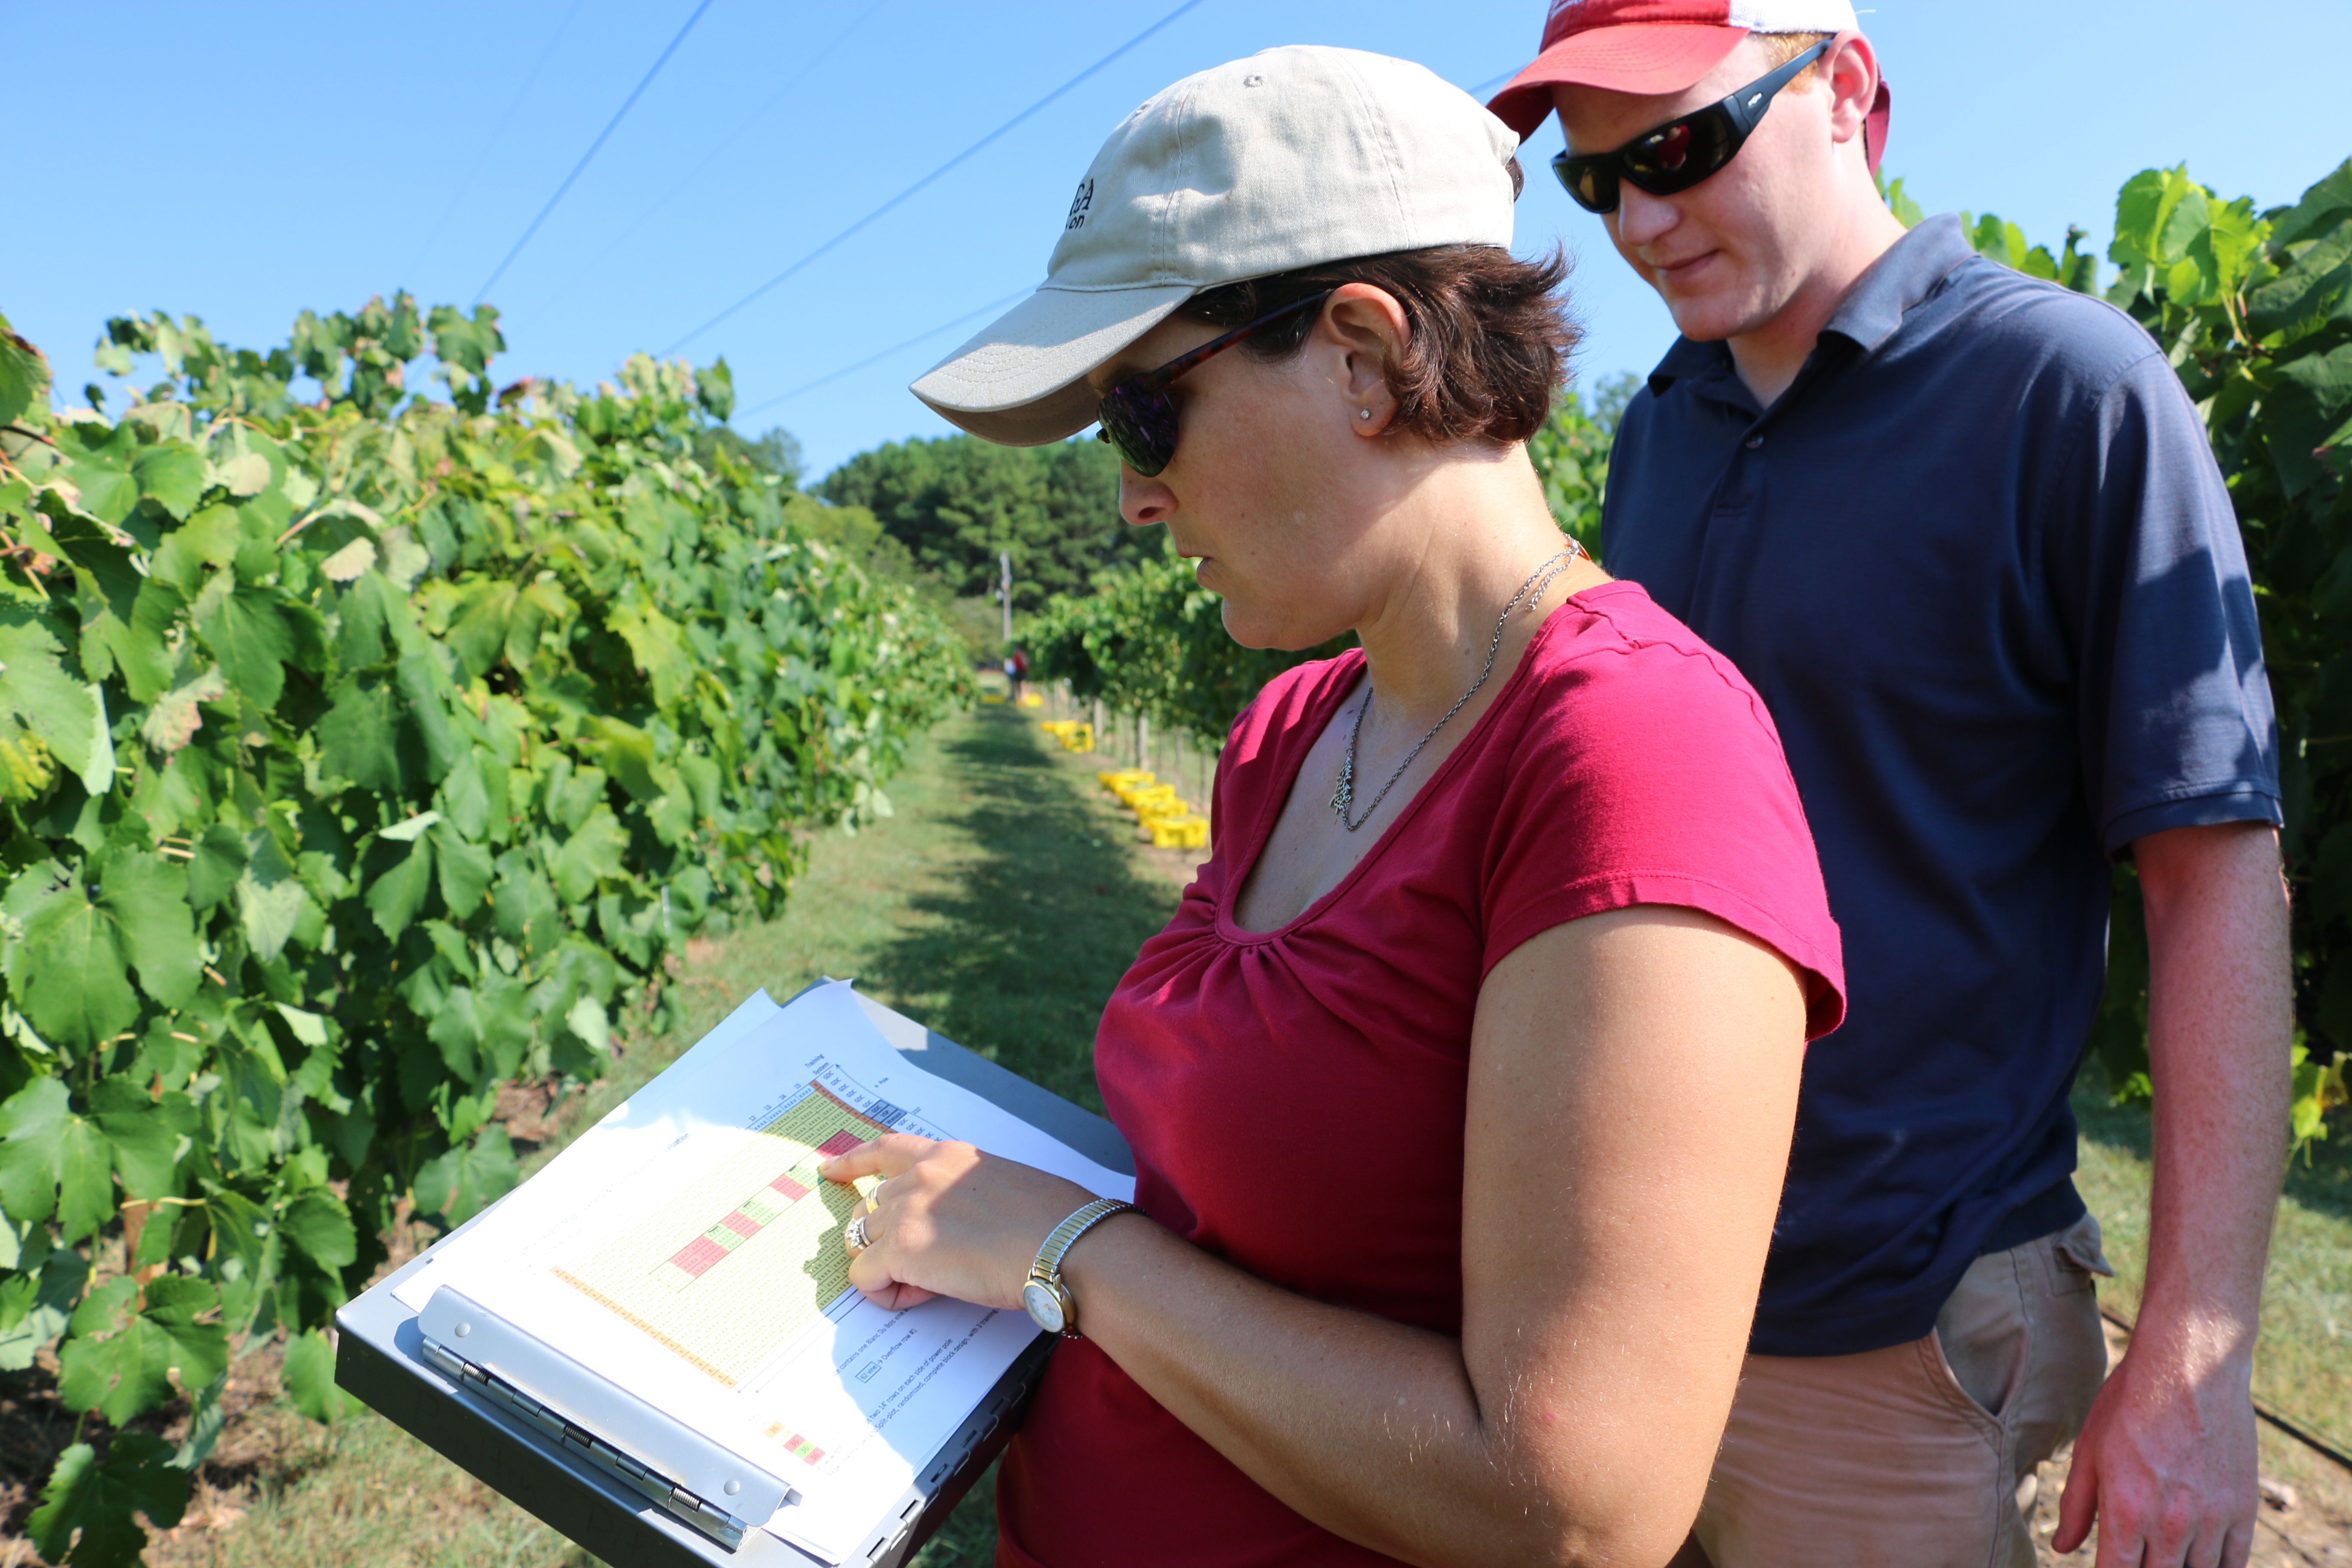 Carroll County UGA Extension agent Paula Burke and UGA Agricultural and Environmental Services Laboratories lab manager Daniel Jackson look over site plans for an experimental plot of wine grapes at Trillium Vineyards in West Georgia.